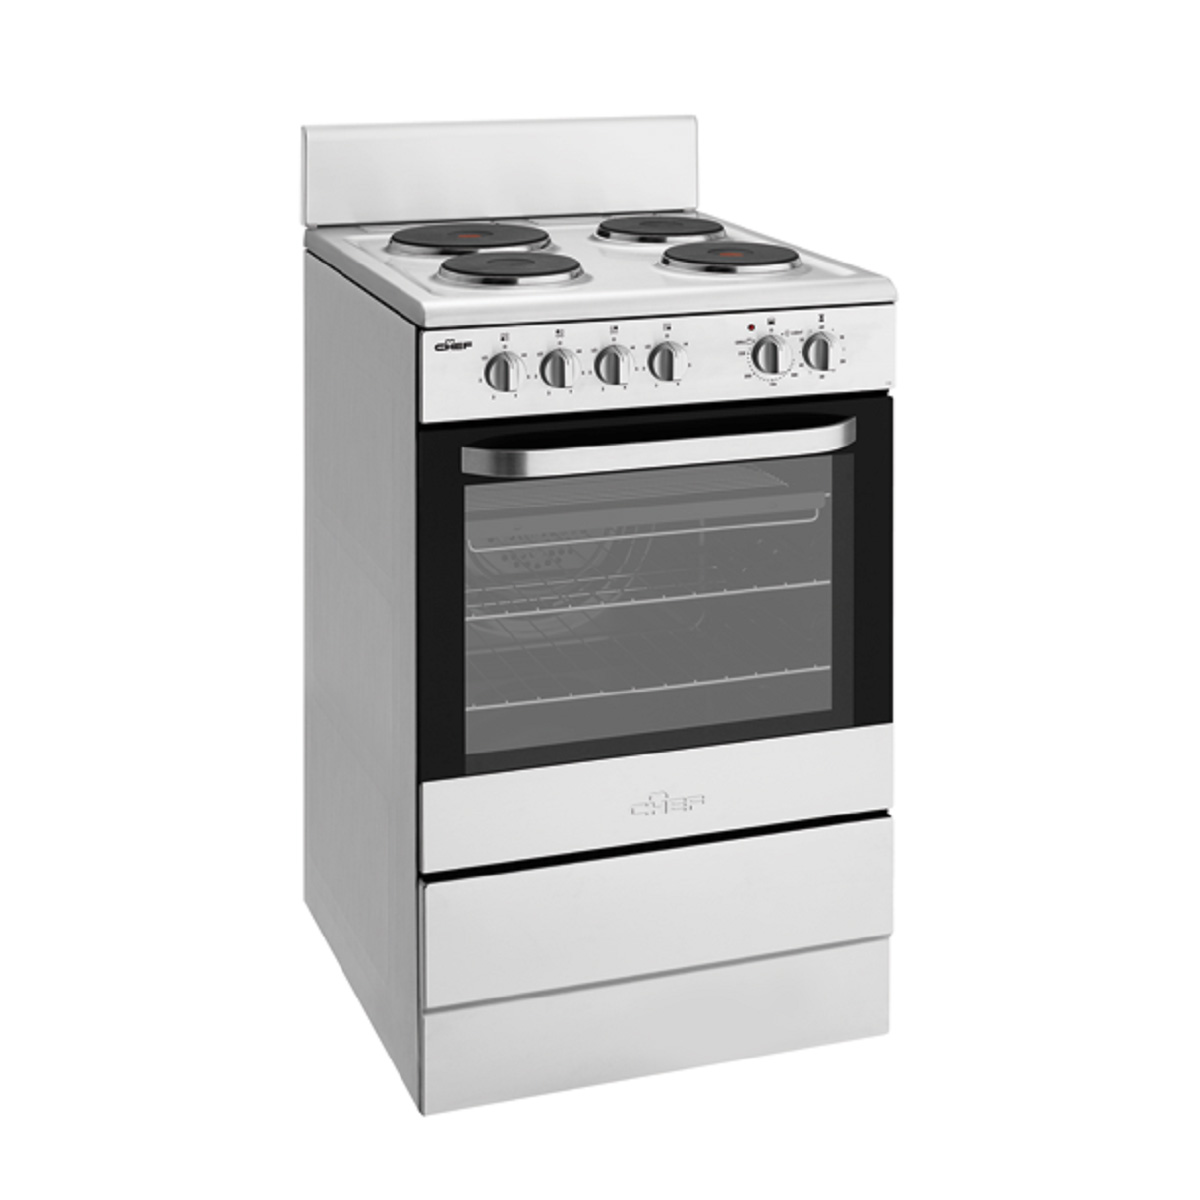 Chef CFE536SA Freestanding Electric Oven/Stove - Up to 60% Off